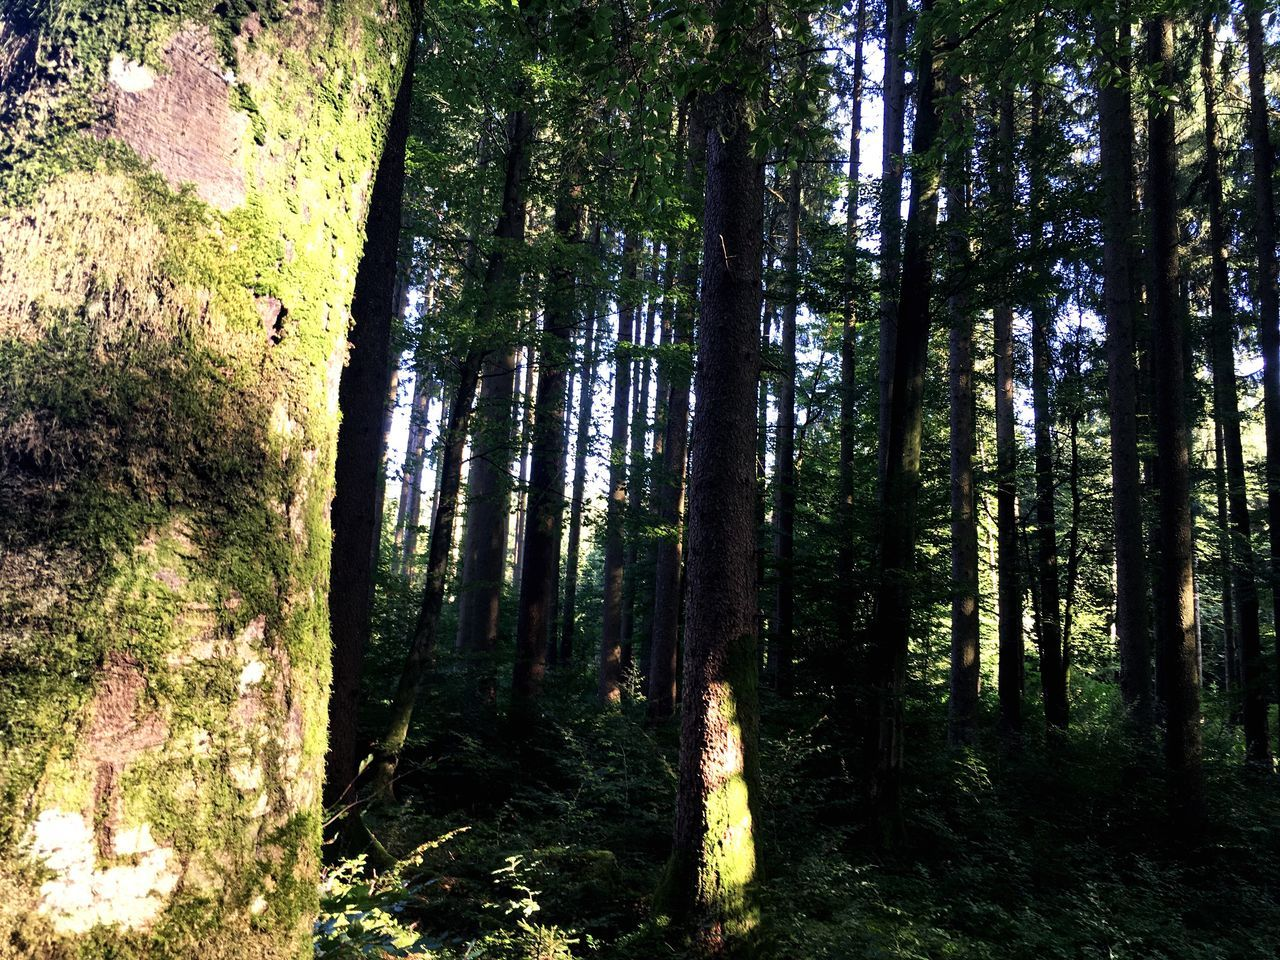 forest, tree, tree trunk, nature, tranquil scene, tranquility, growth, scenics, no people, beauty in nature, day, woodland, outdoors, landscape